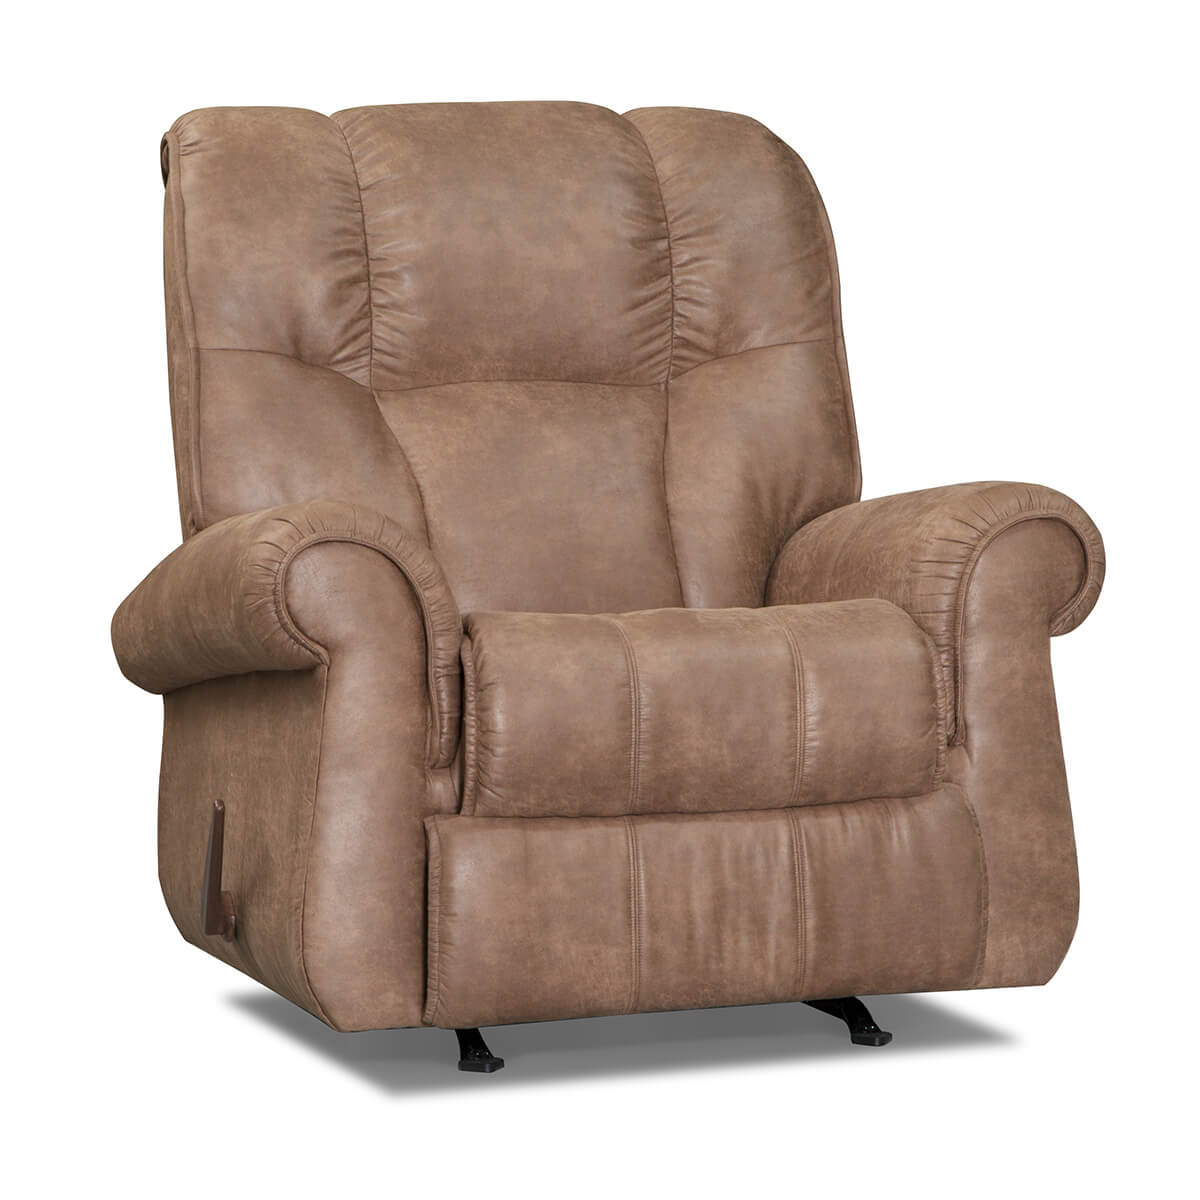 living room furniture chairs recliner